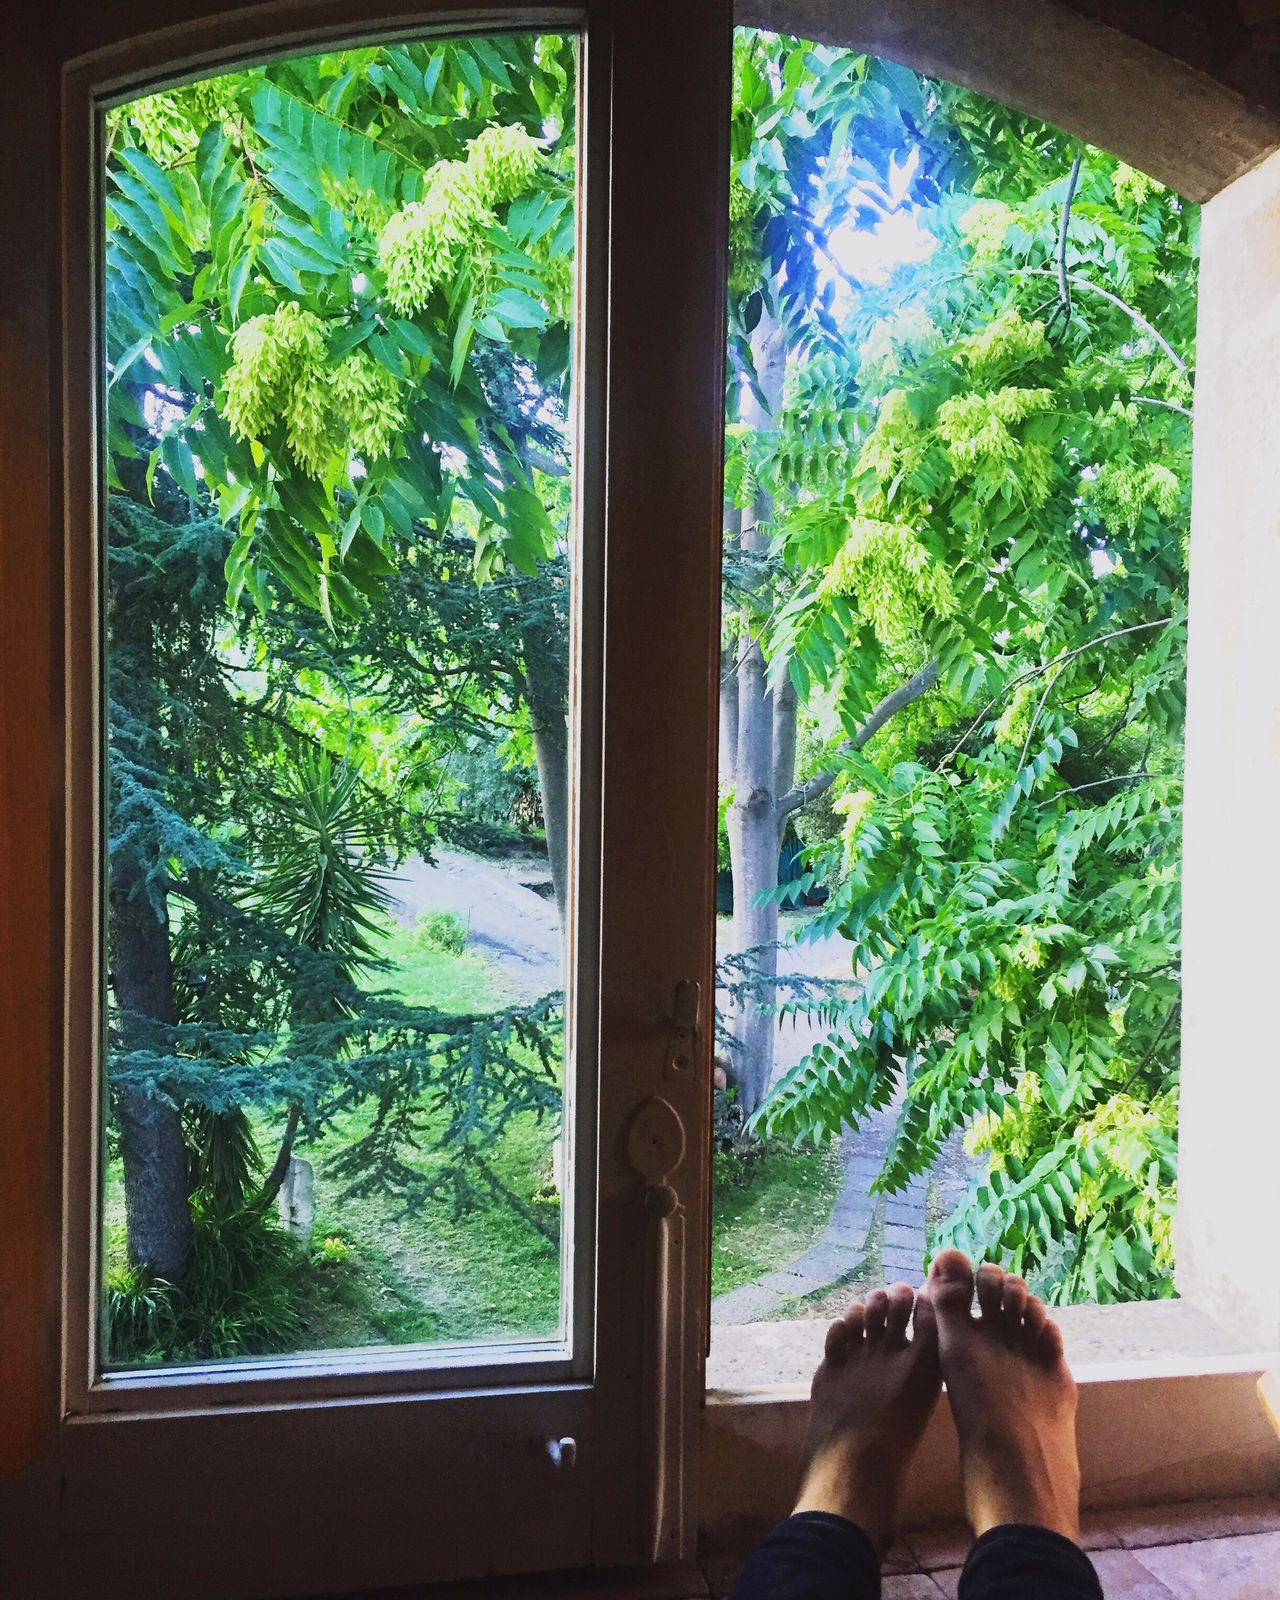 Sommergefühle Window Personal Perspective Low Section One Person Human Leg Indoors  Plant Real People Barefoot Tree Growth Human Body Part Day Green Color Lifestyles Nature Close-up Water People Adult Calm Tranquility Tranquil Scene